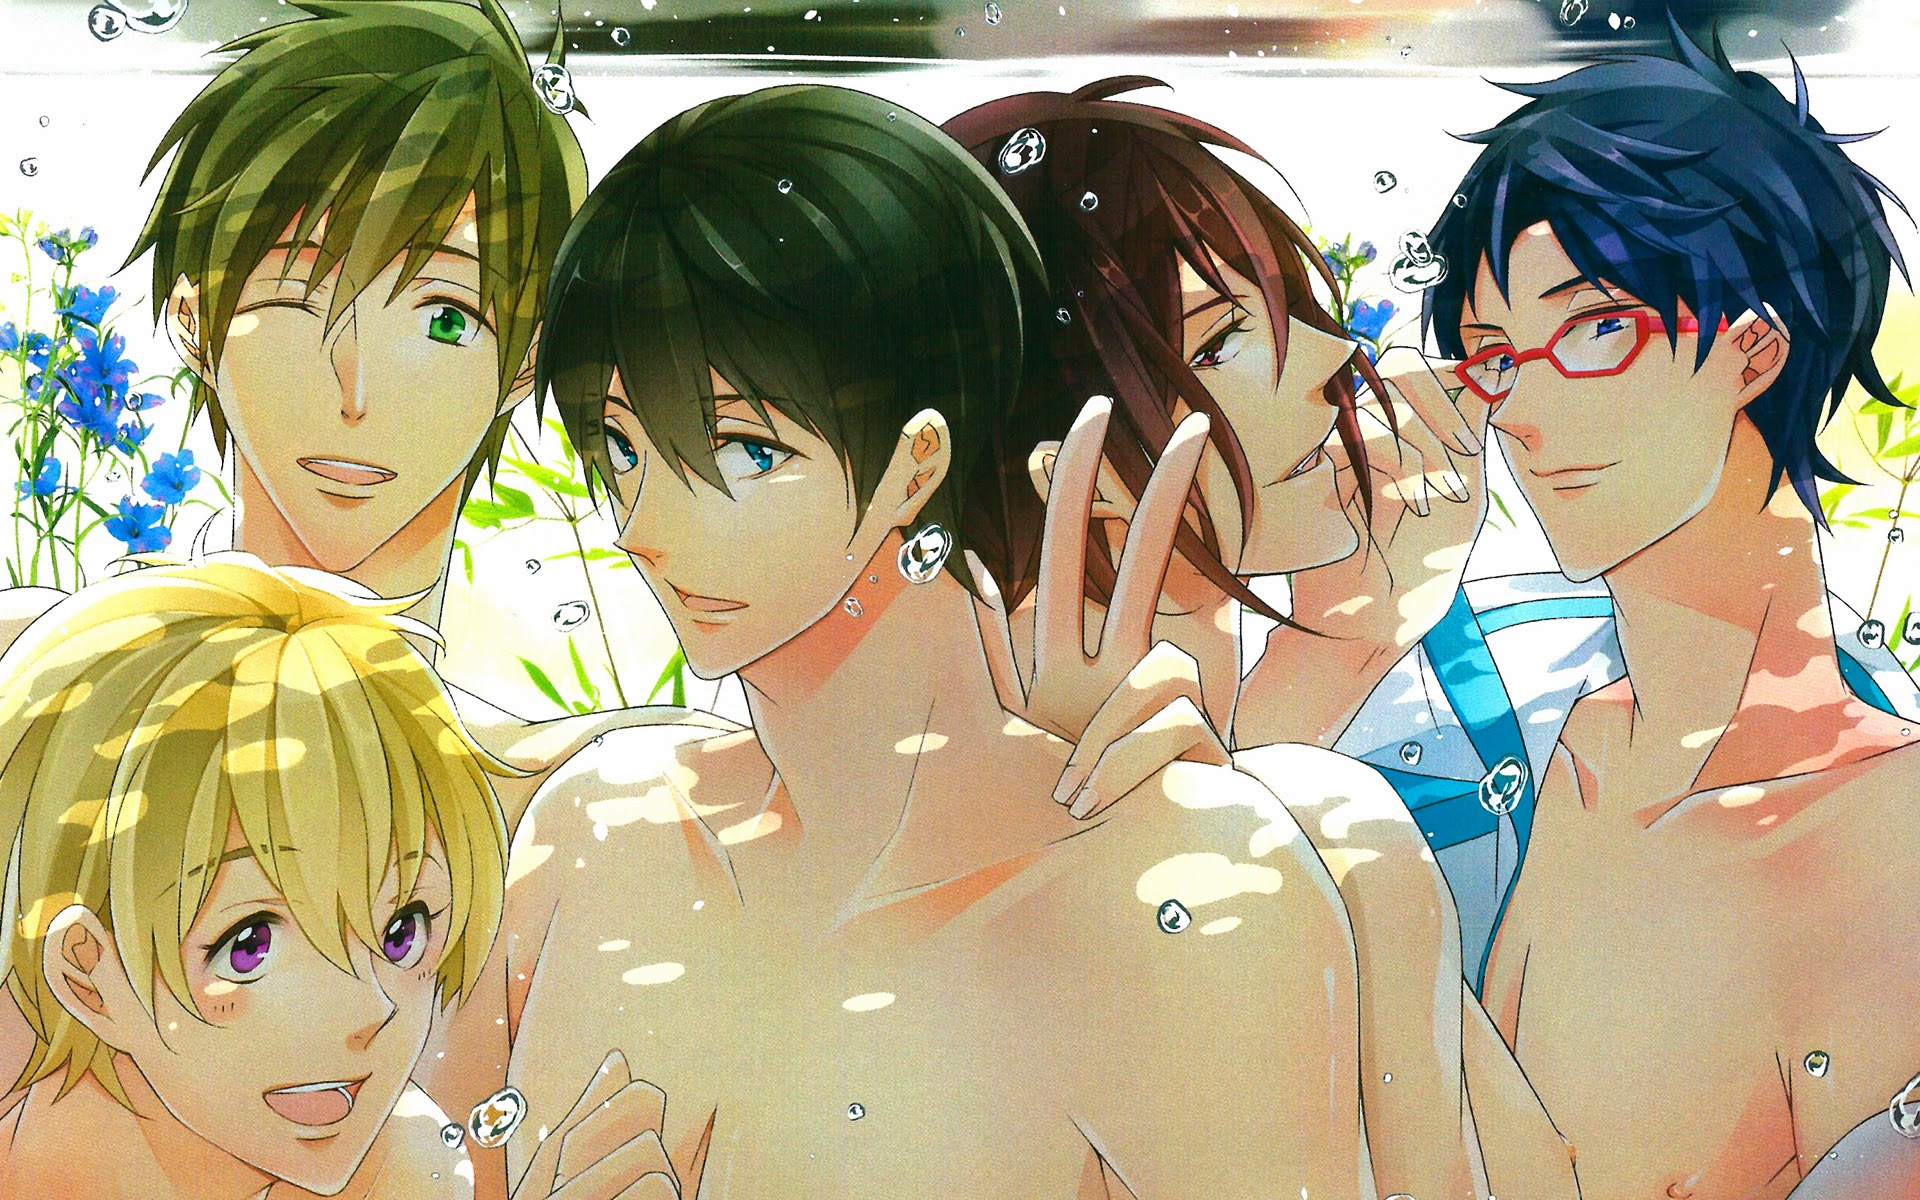 Anime Boys Underwater A89 HD Wallpaper 1920x1200